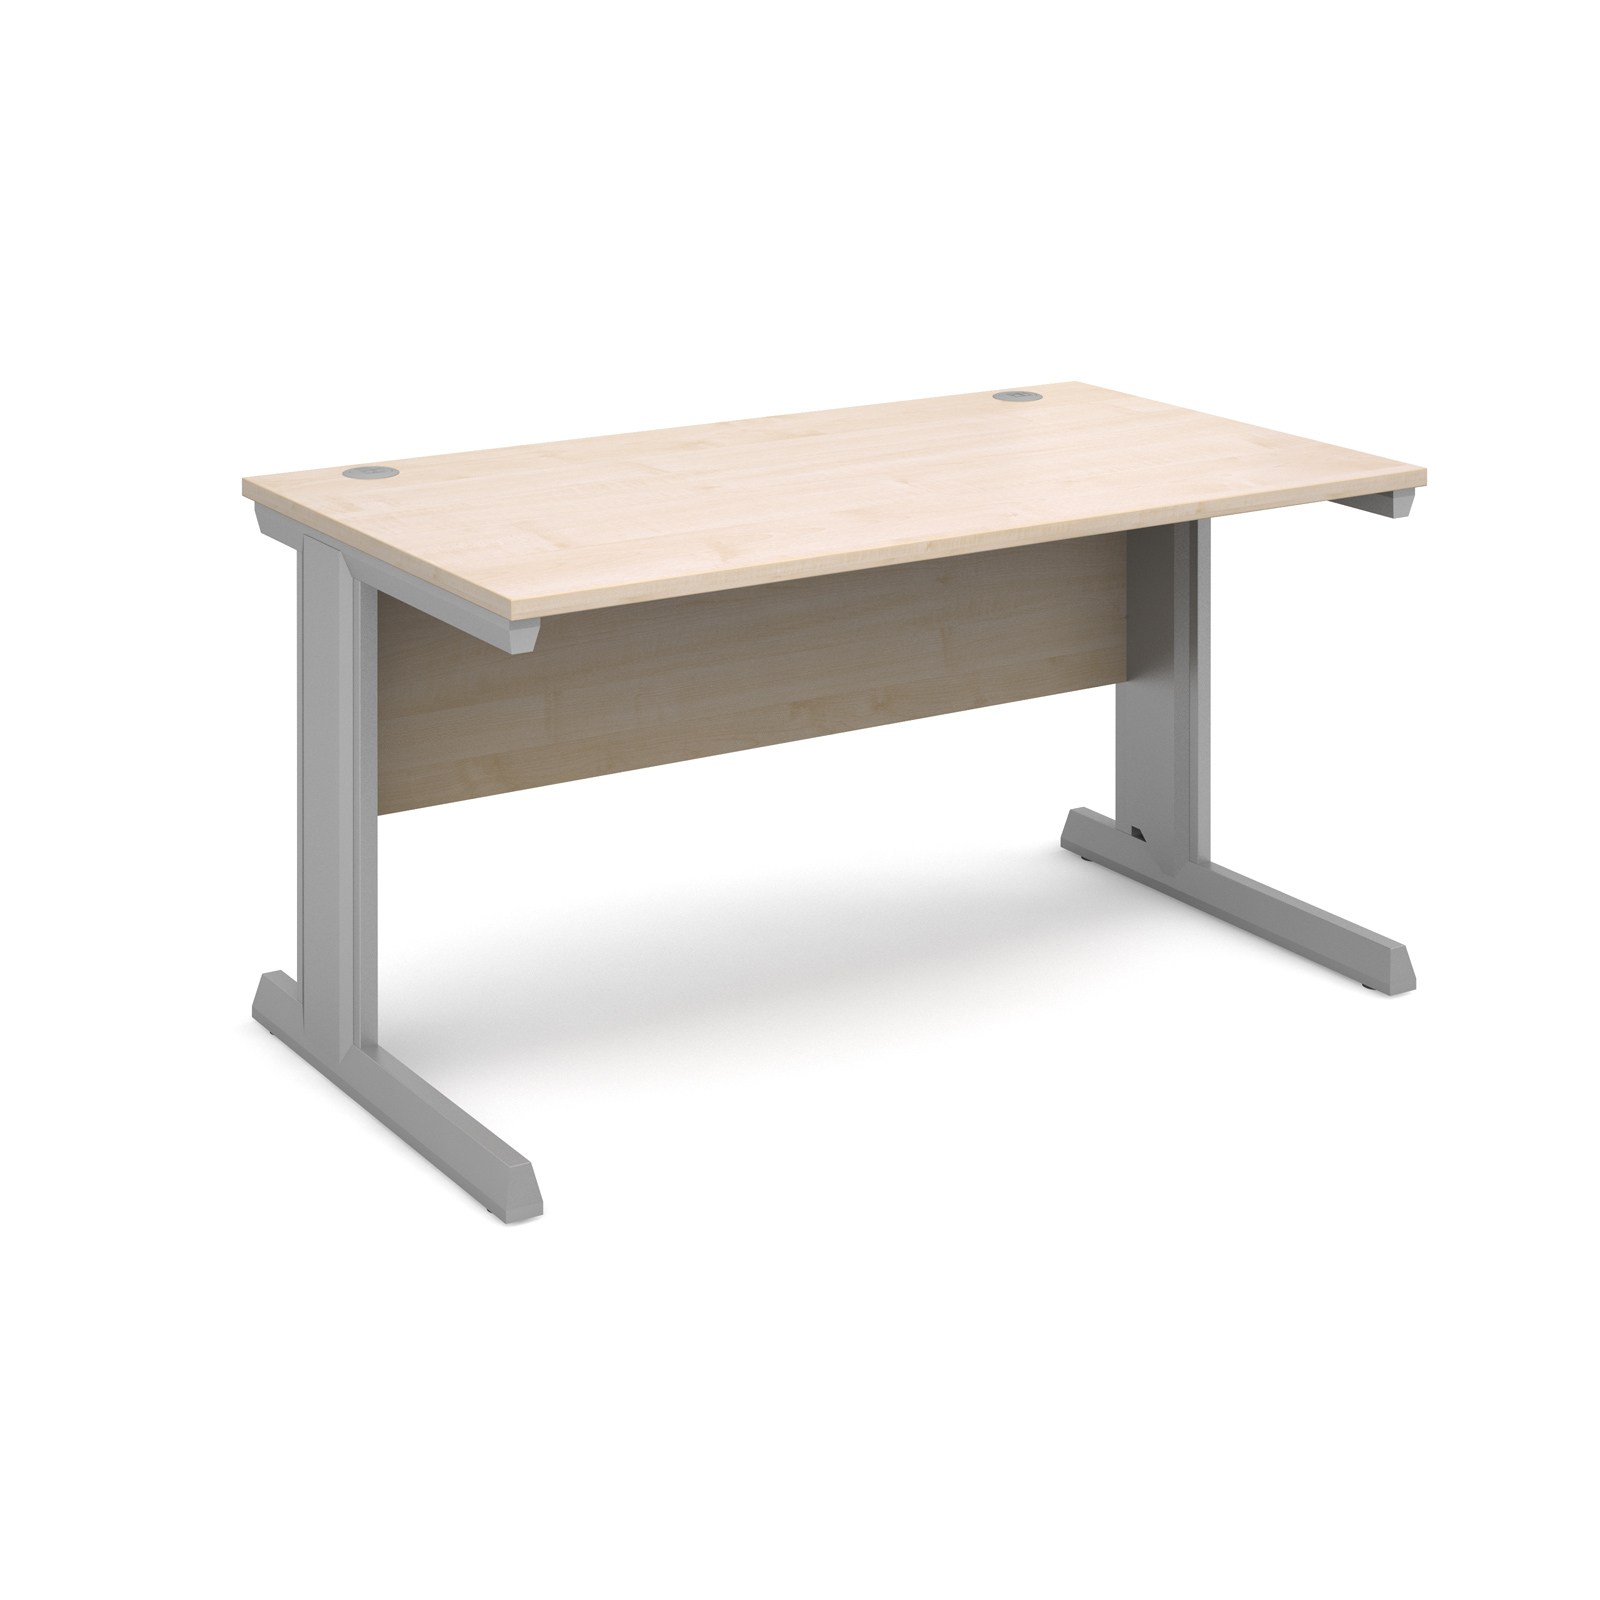 Vivo straight desk 1400mm x 800mm - silver frame, maple top